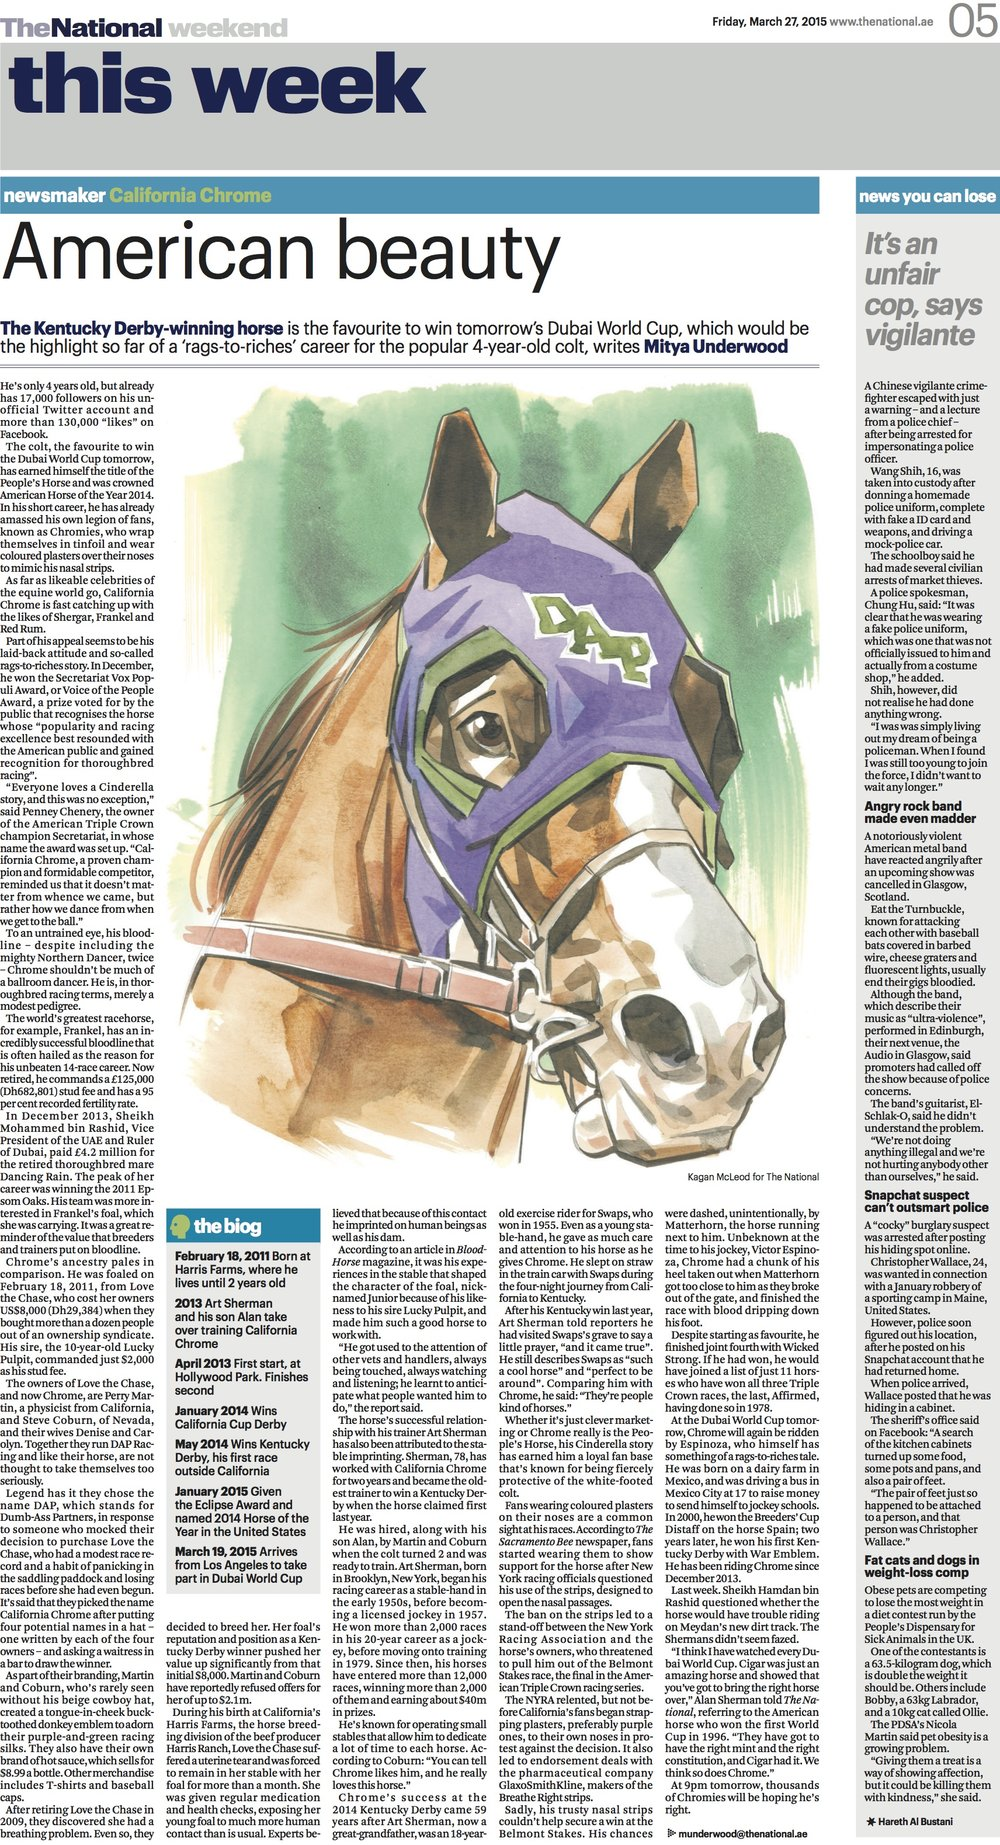 California Chrome: a rags-to-riches tale from the equine world